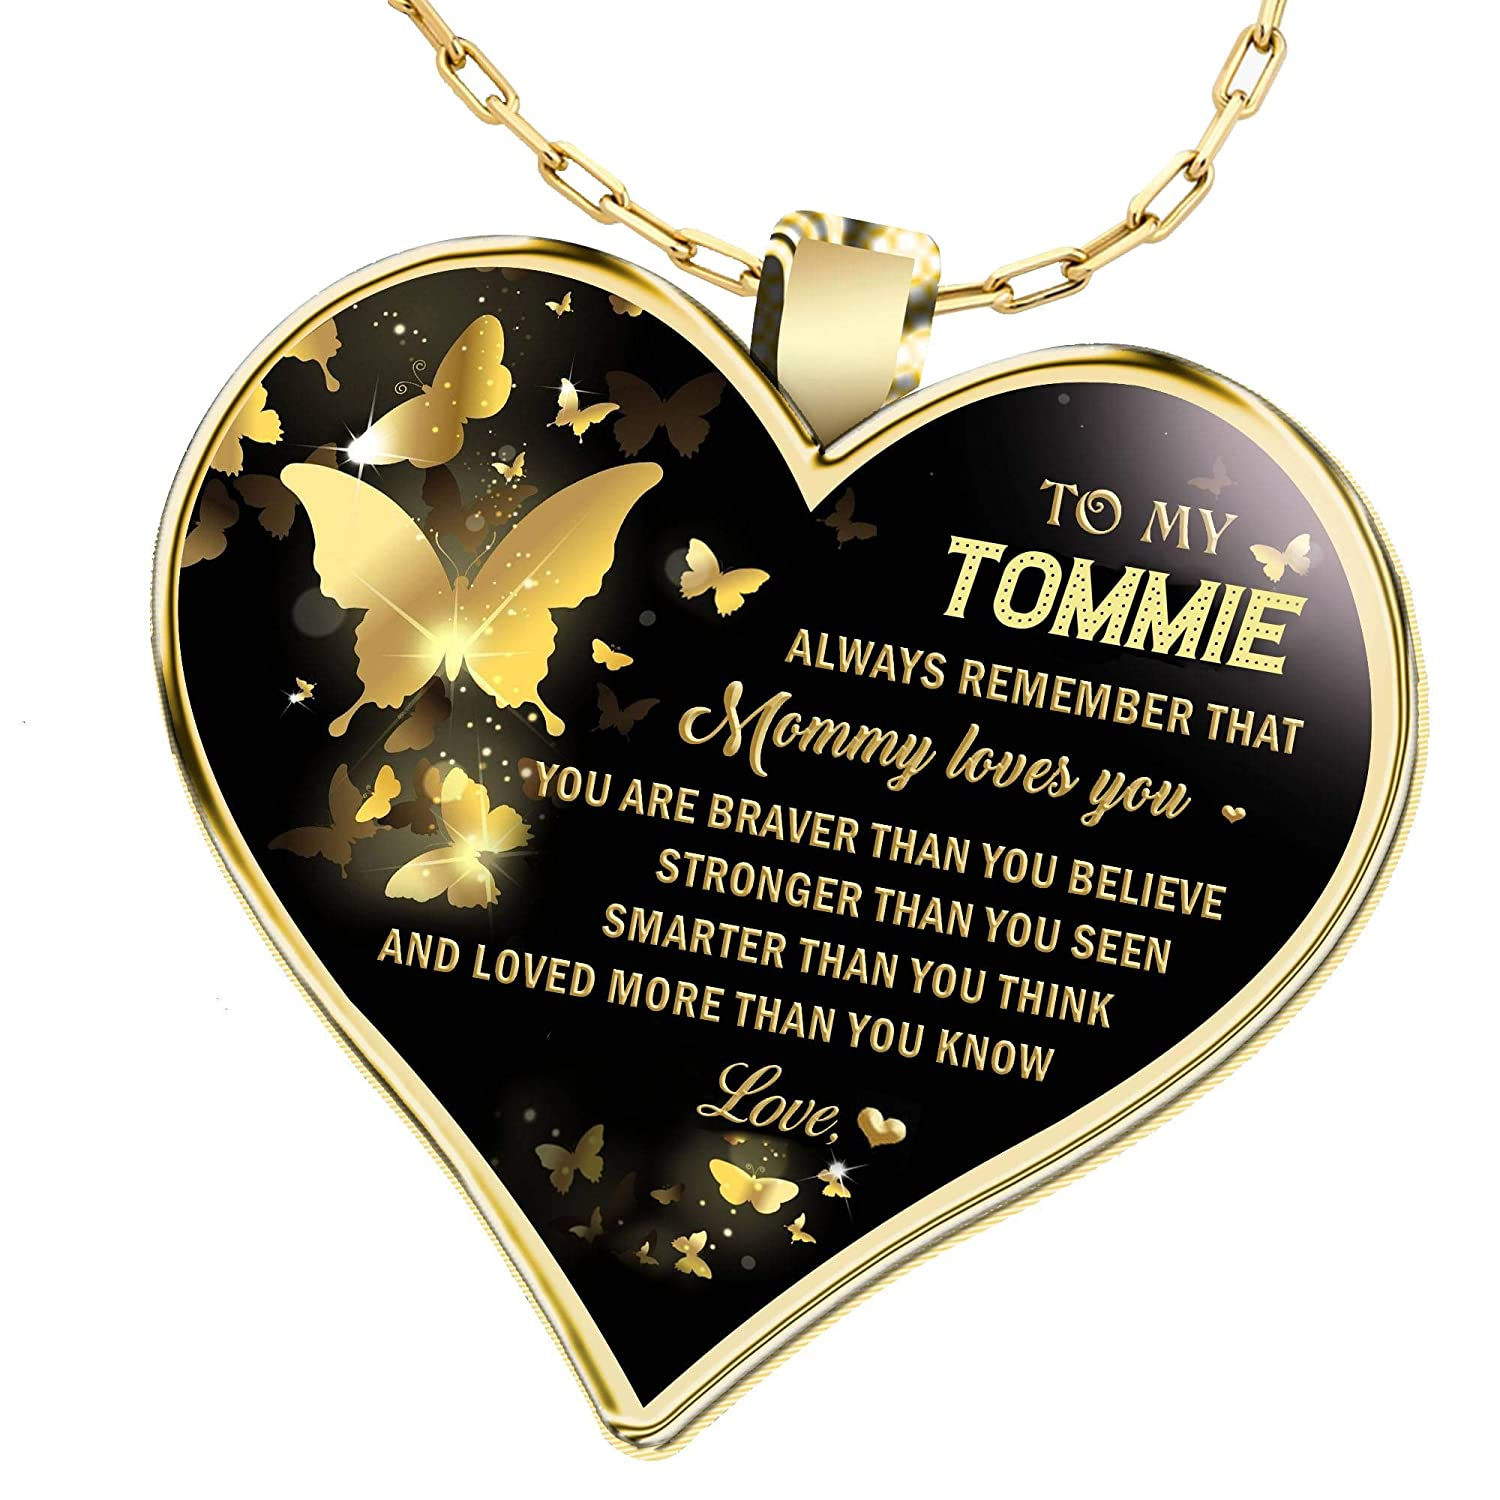 You are Braver Than You Believe for Mom Daughter Jewelry 18K Gold Plated Gifts Necklace Name for Wife to My Tommie Always Remember That Mommy Love You